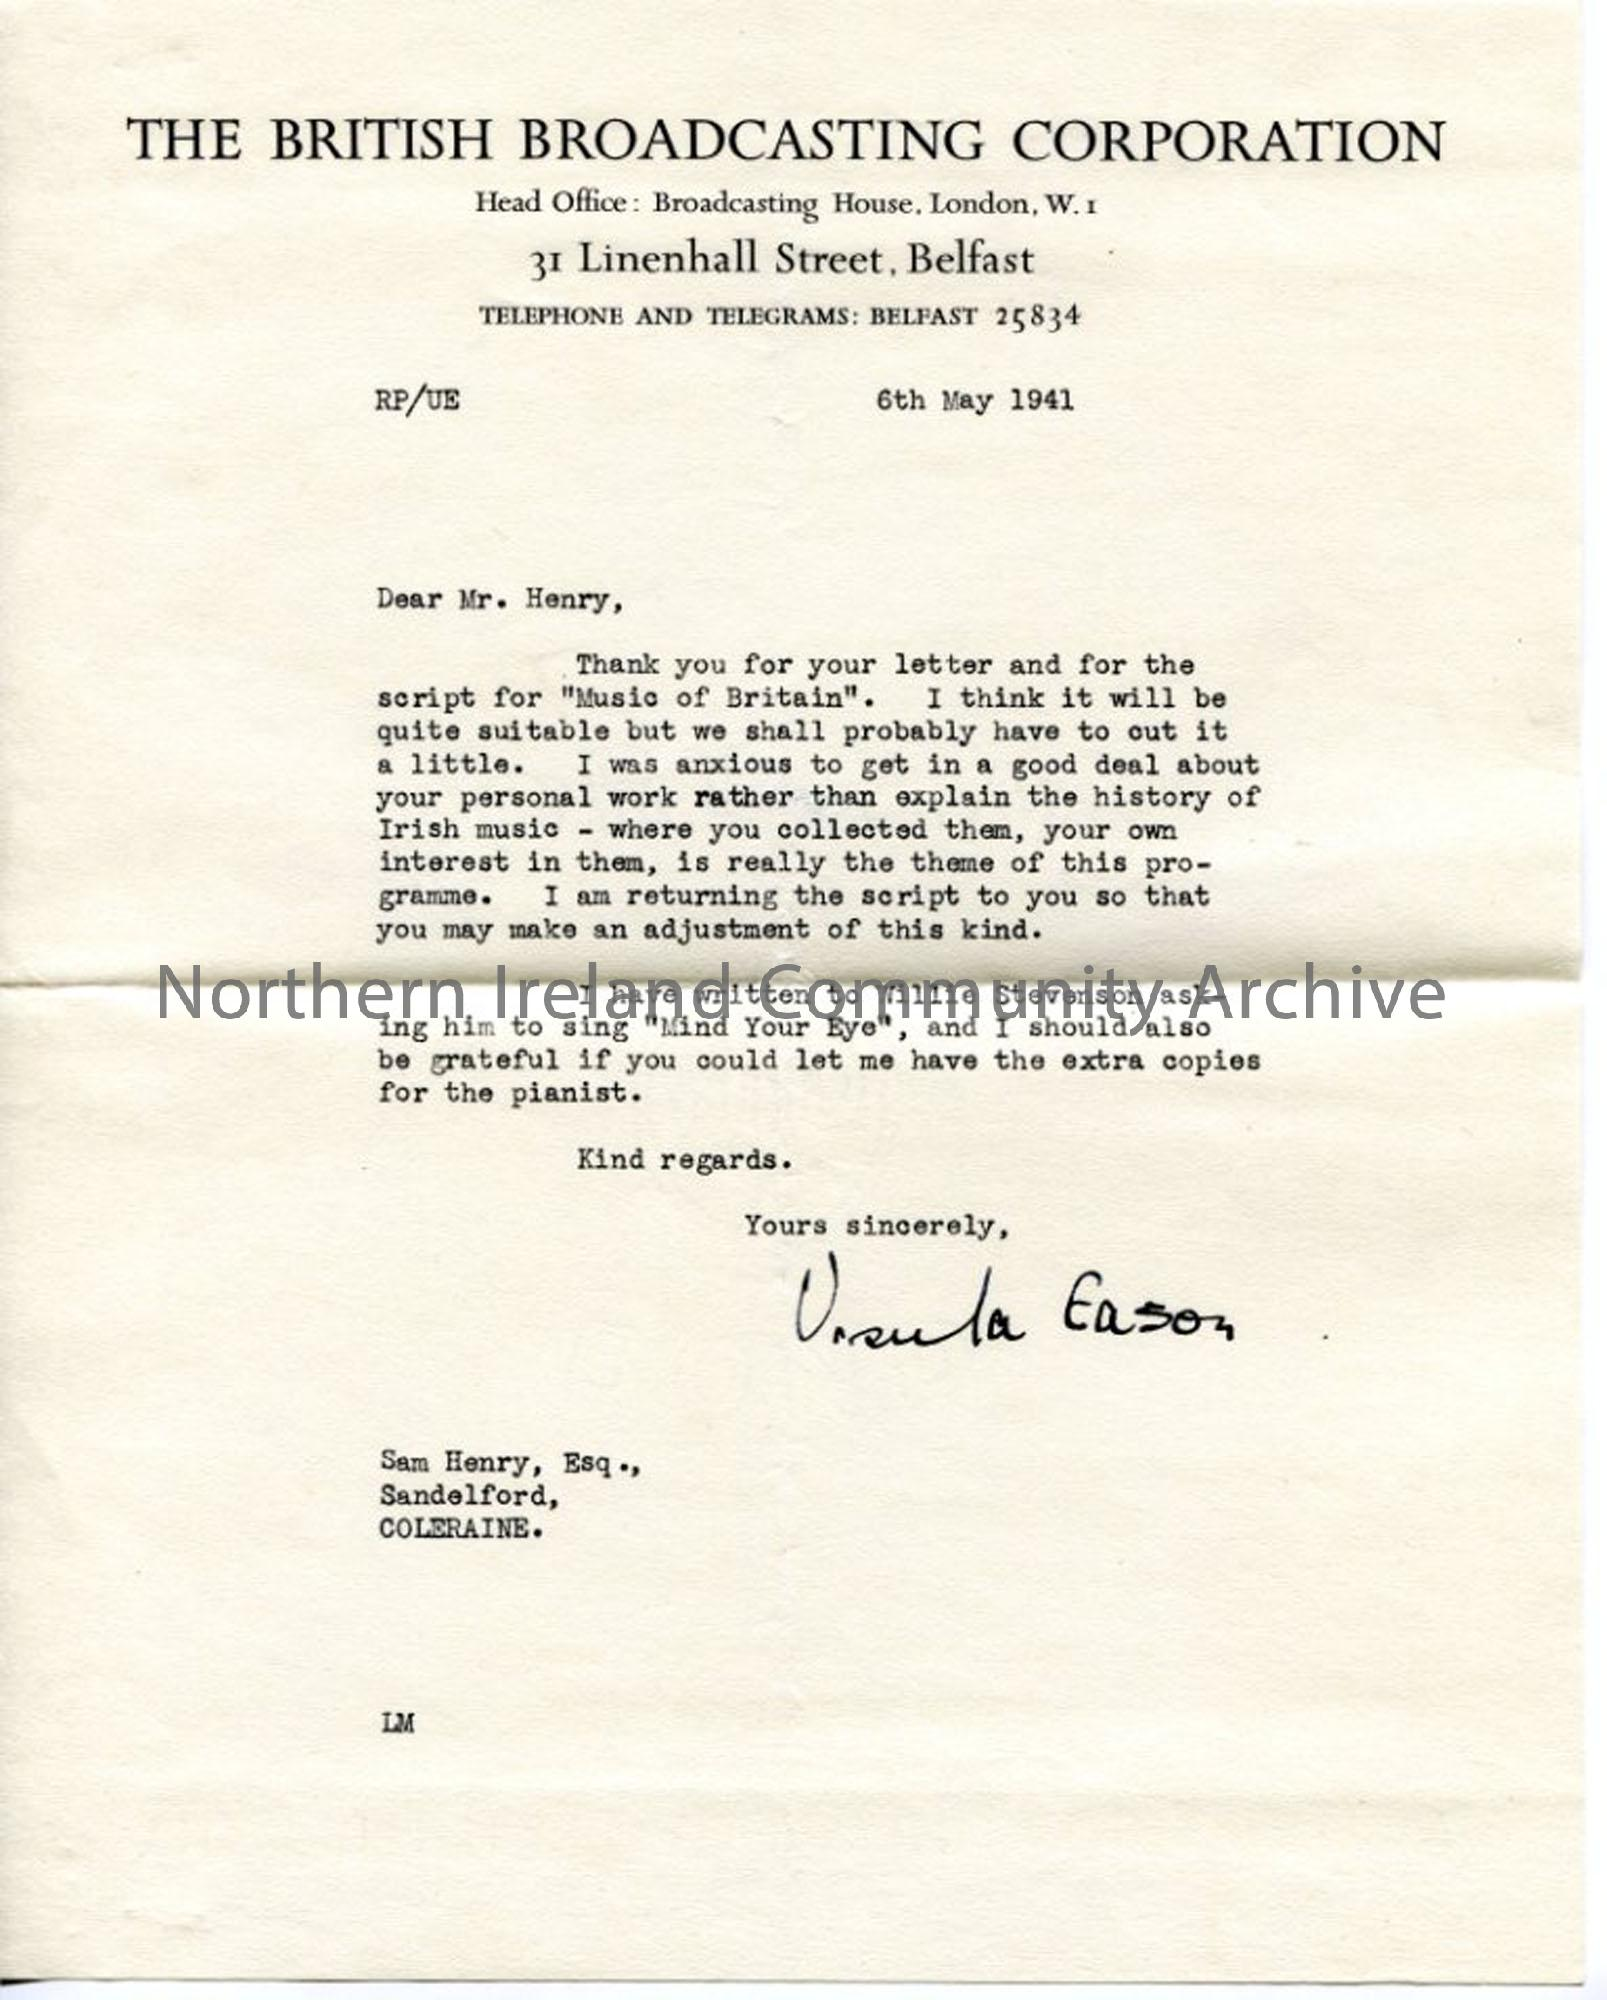 Letter from Ursula Eason of the BBC, dated 6.5.1941